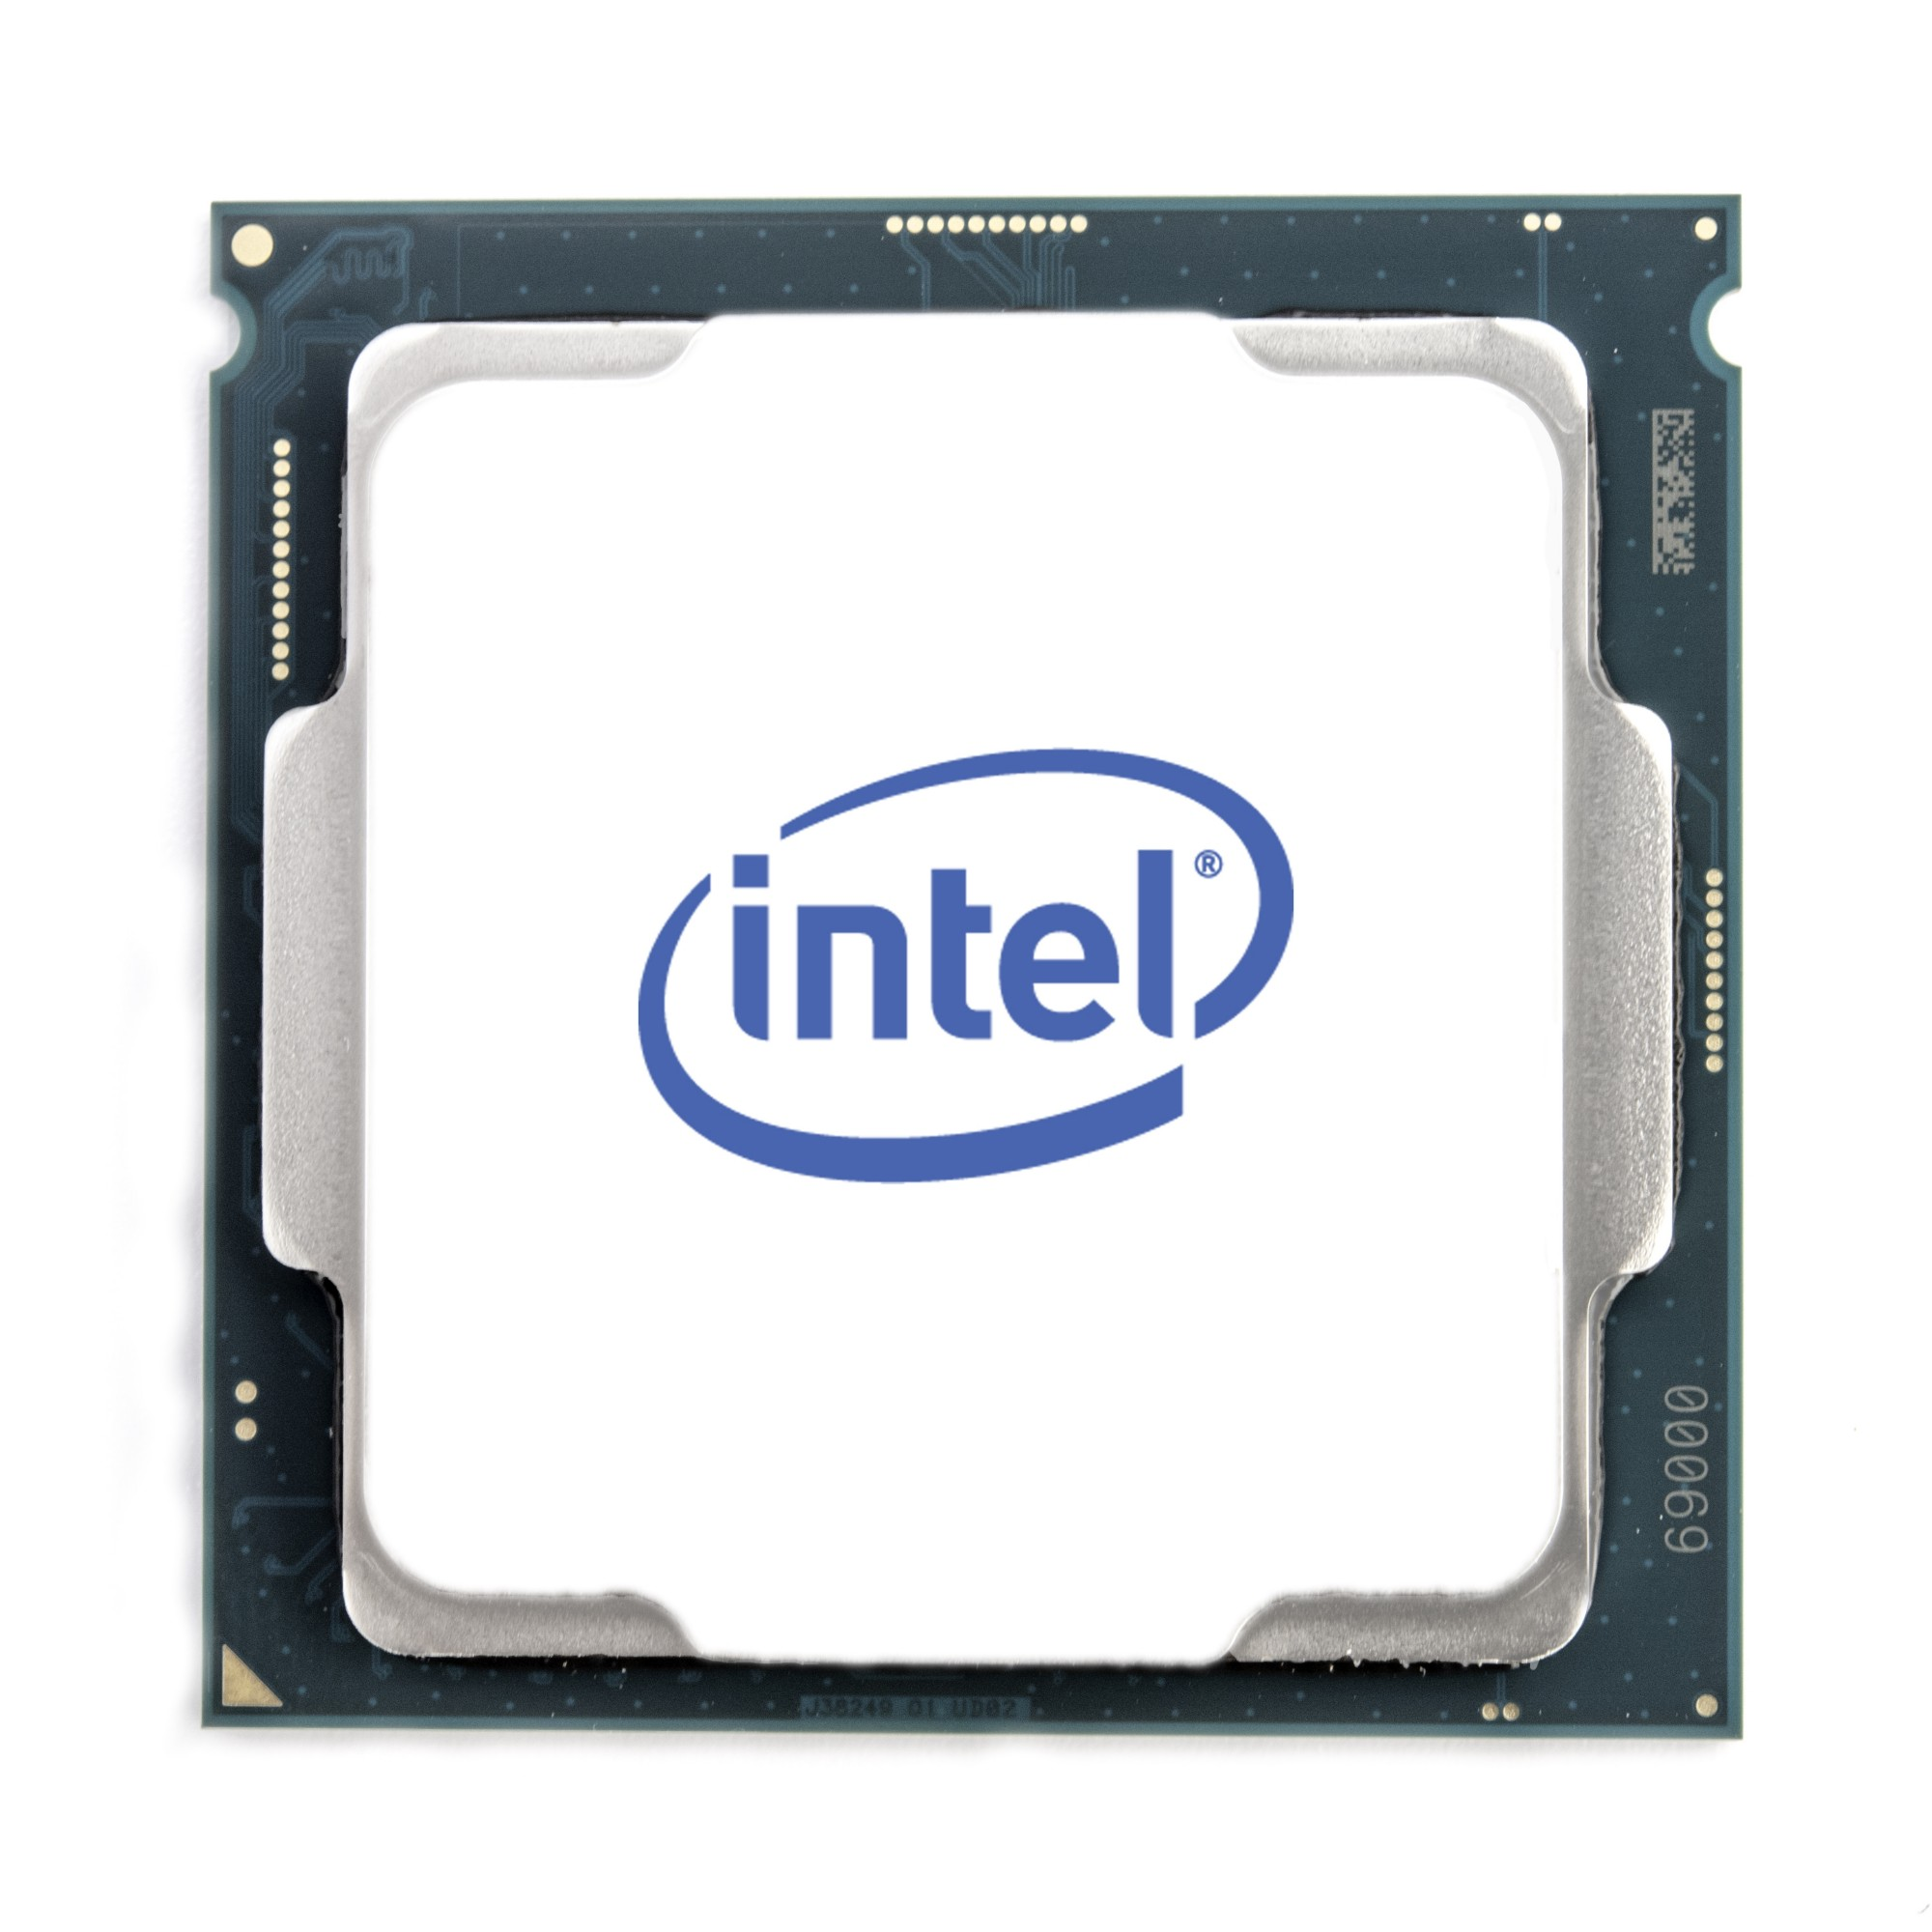 INTEL XEON 6234 PROCESSOR 3.3 GHZ 25 MB